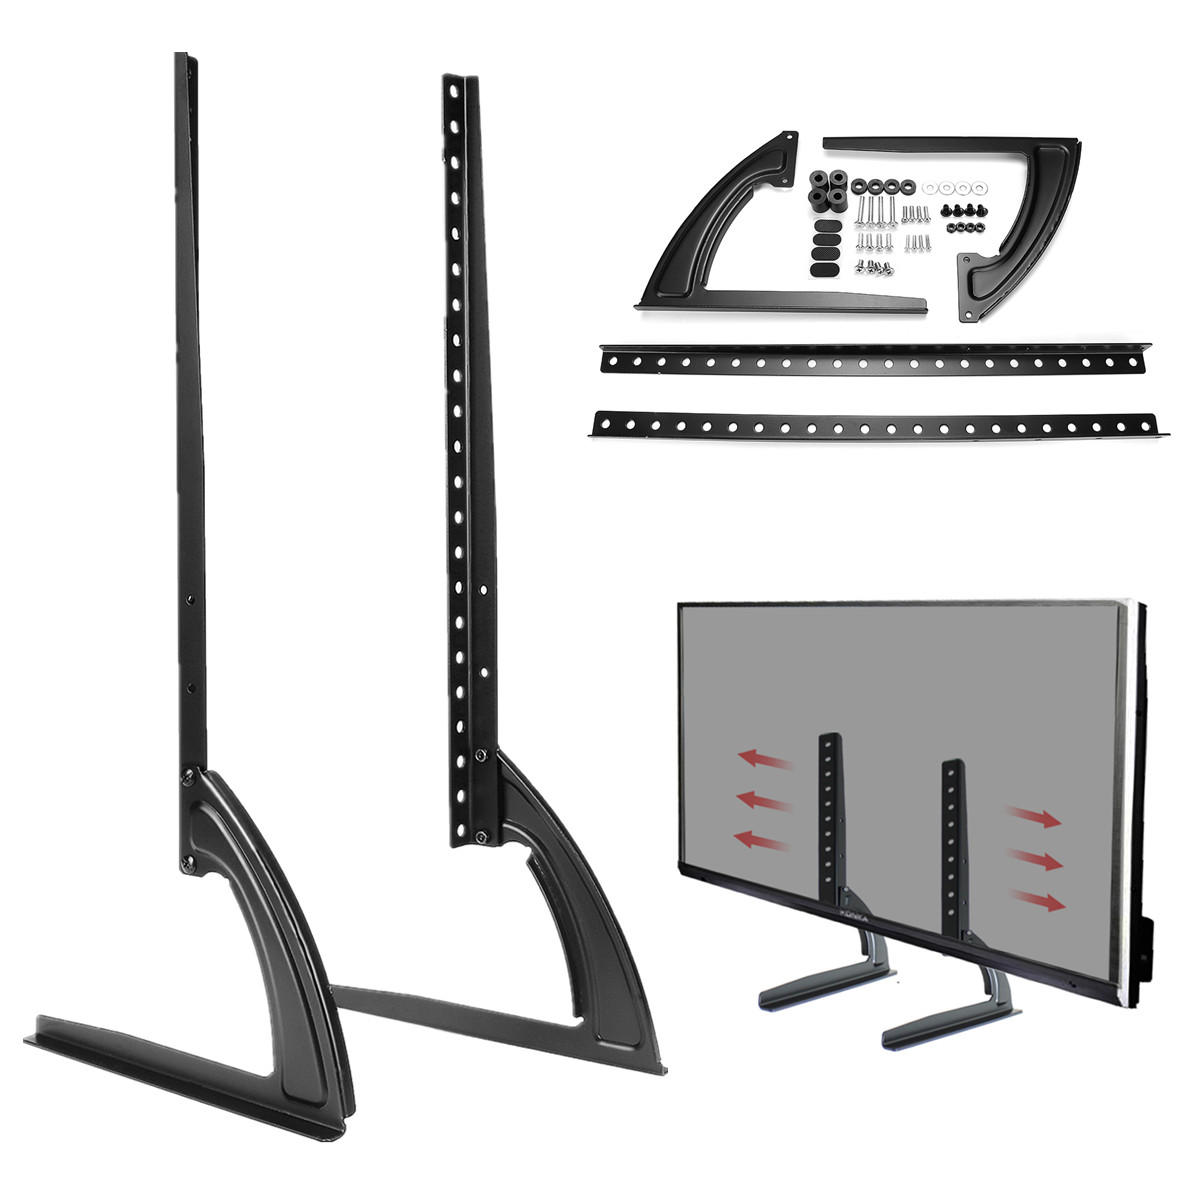 Flat Screen Tv Stands Universal Table Top Tv Stand Legs For Led Lcd Plasma Flat Screen Tv 26 65inch